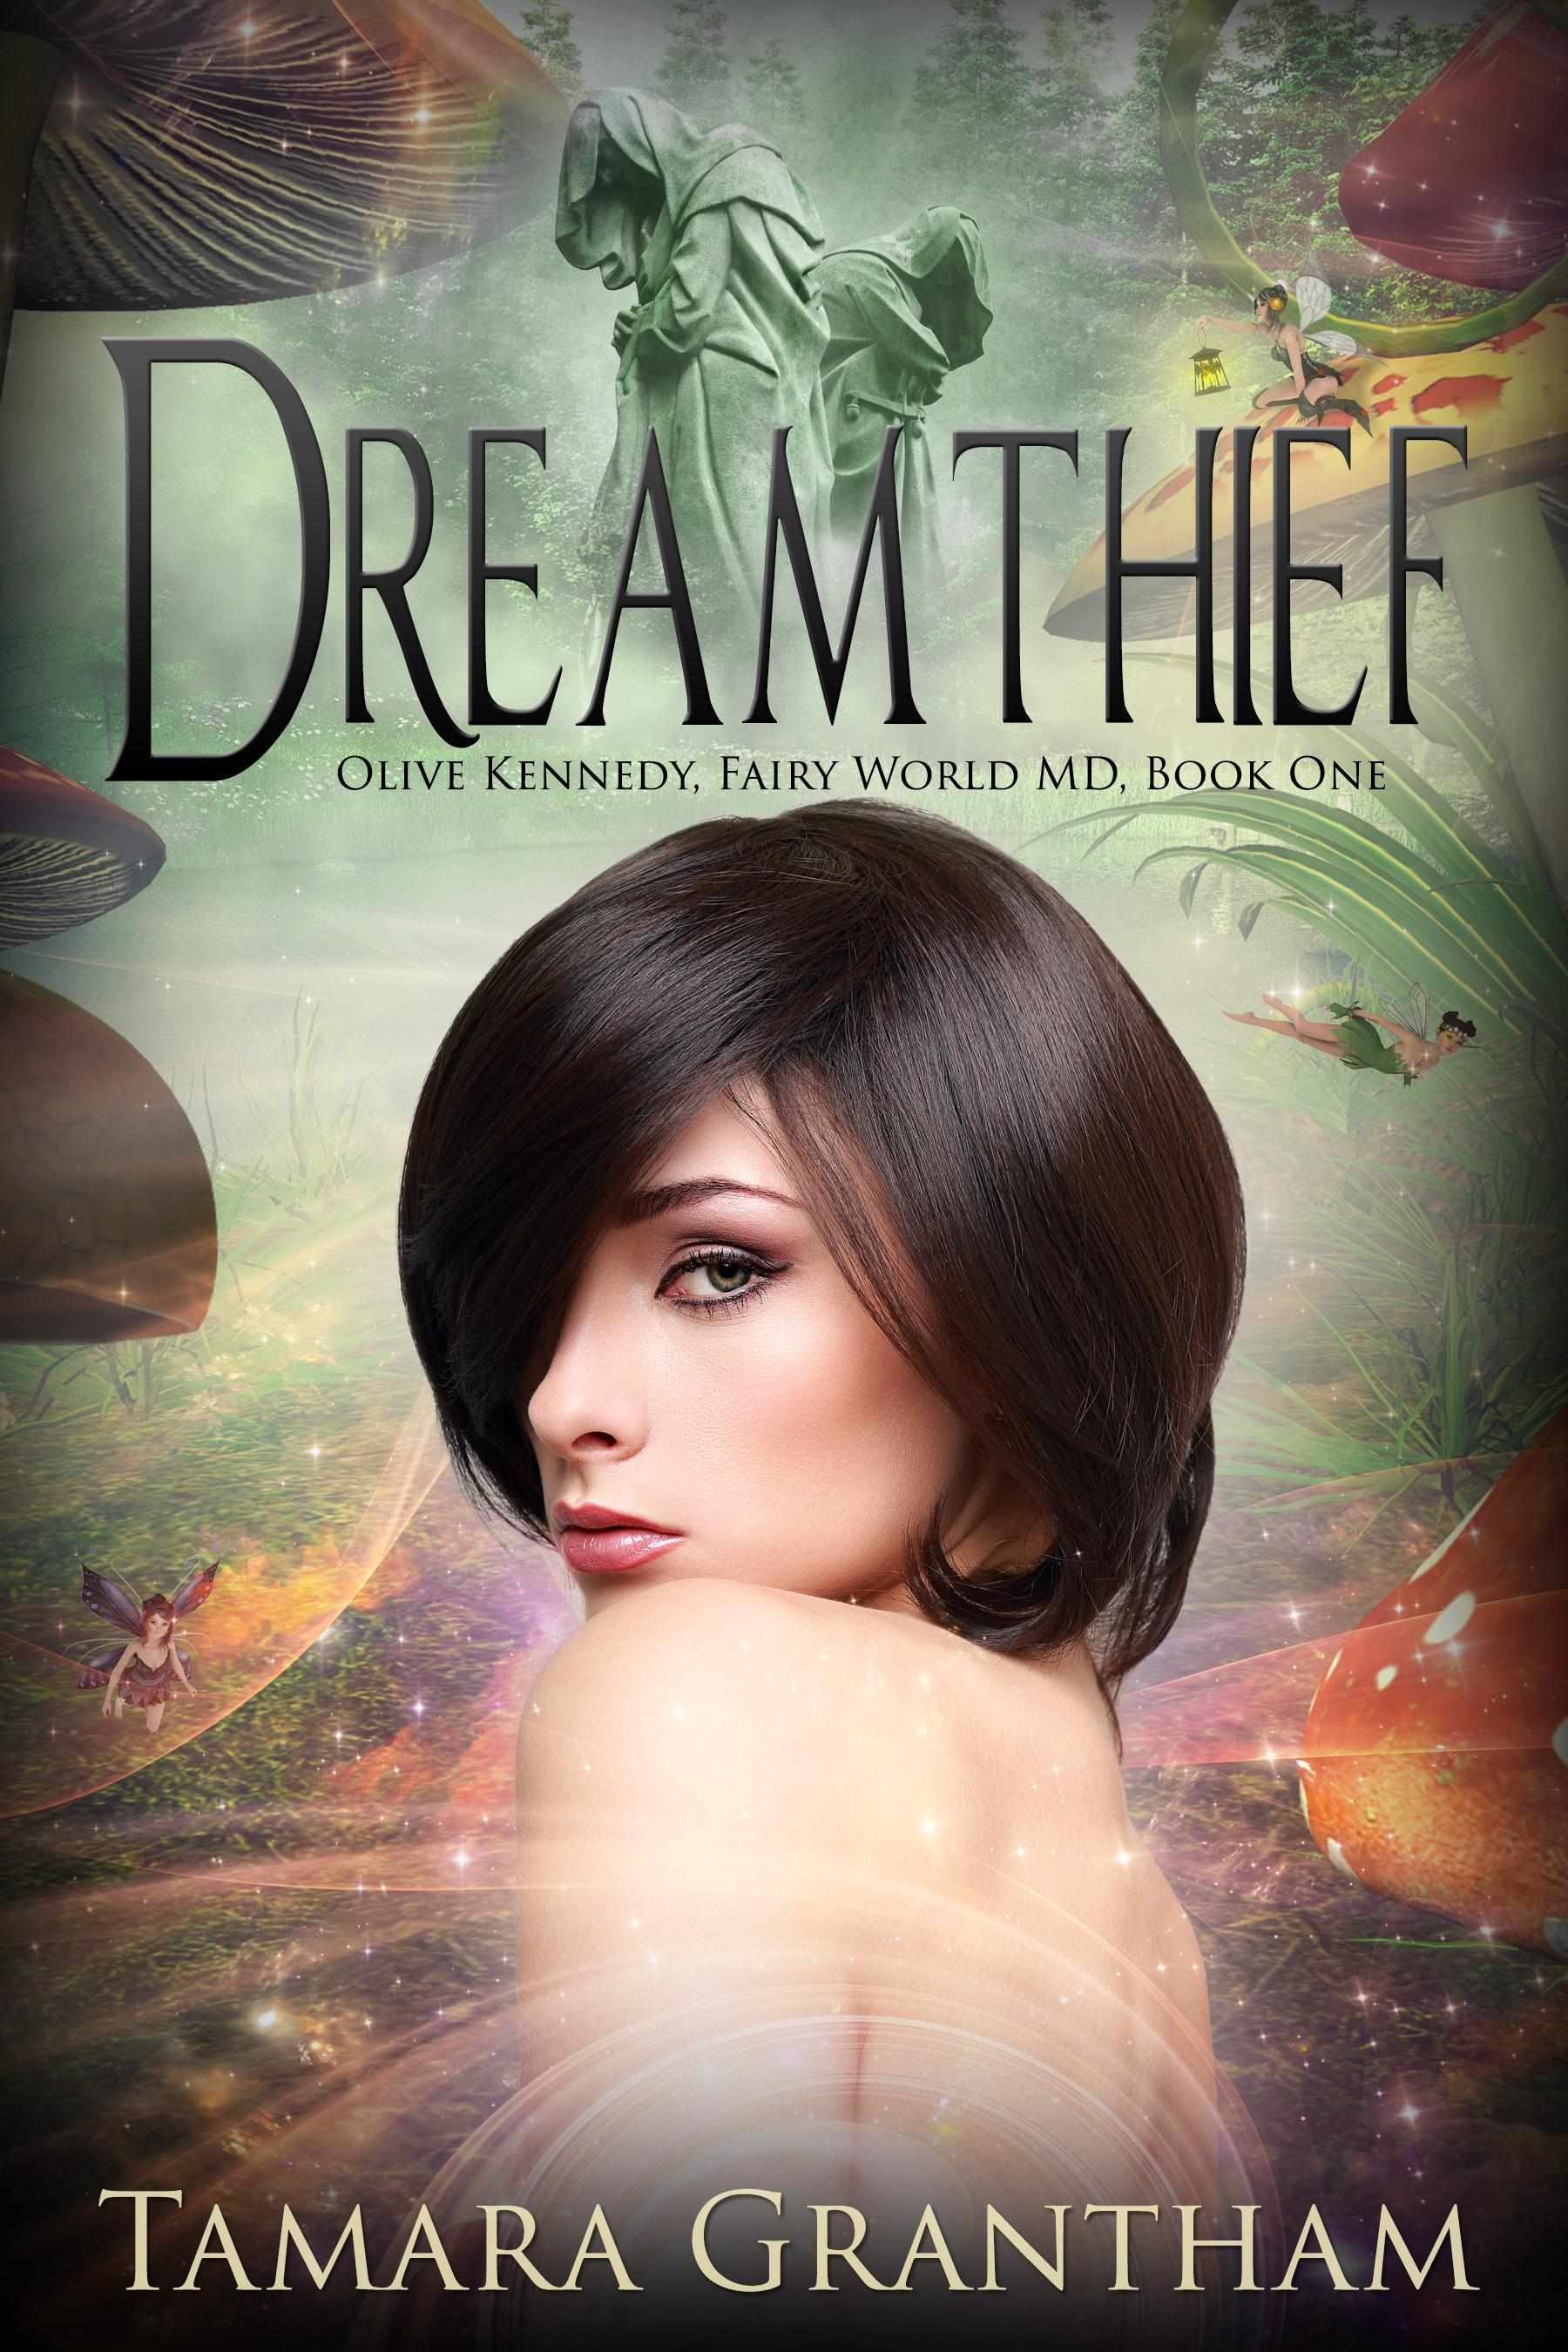 Dreamthief